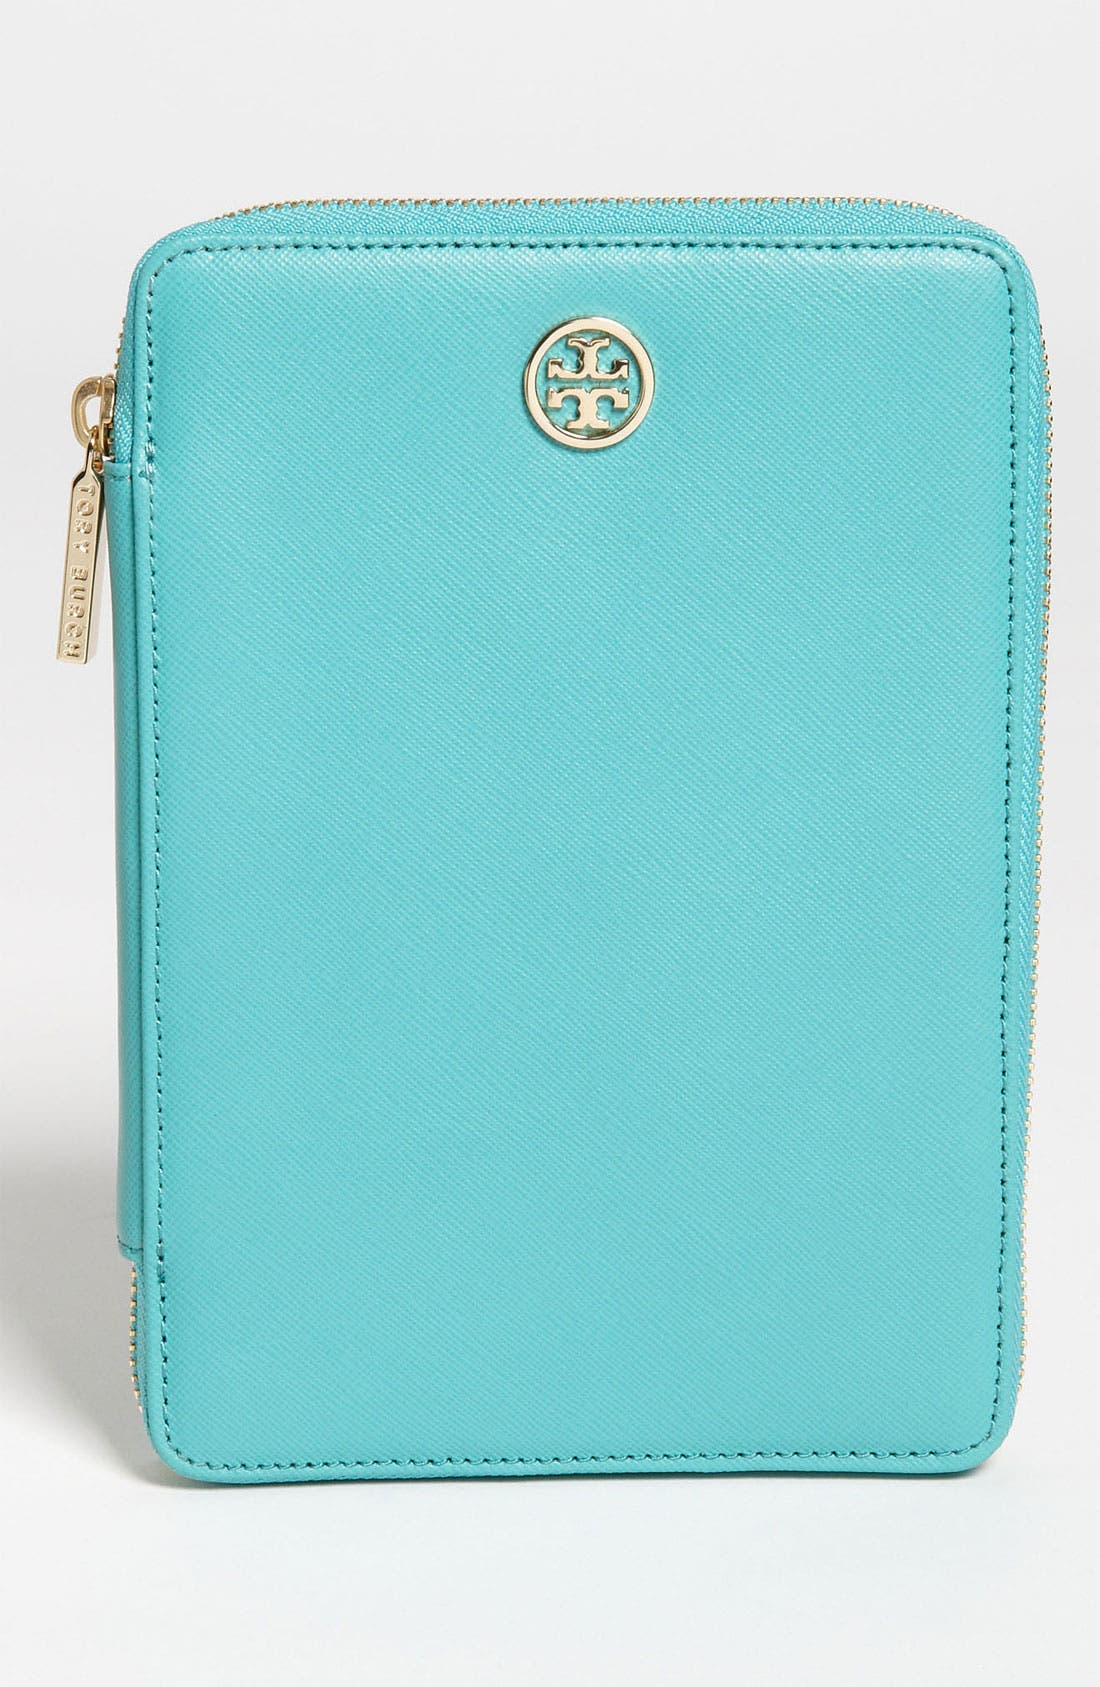 Main Image - Tory Burch 'Robinson' E-Reader Case